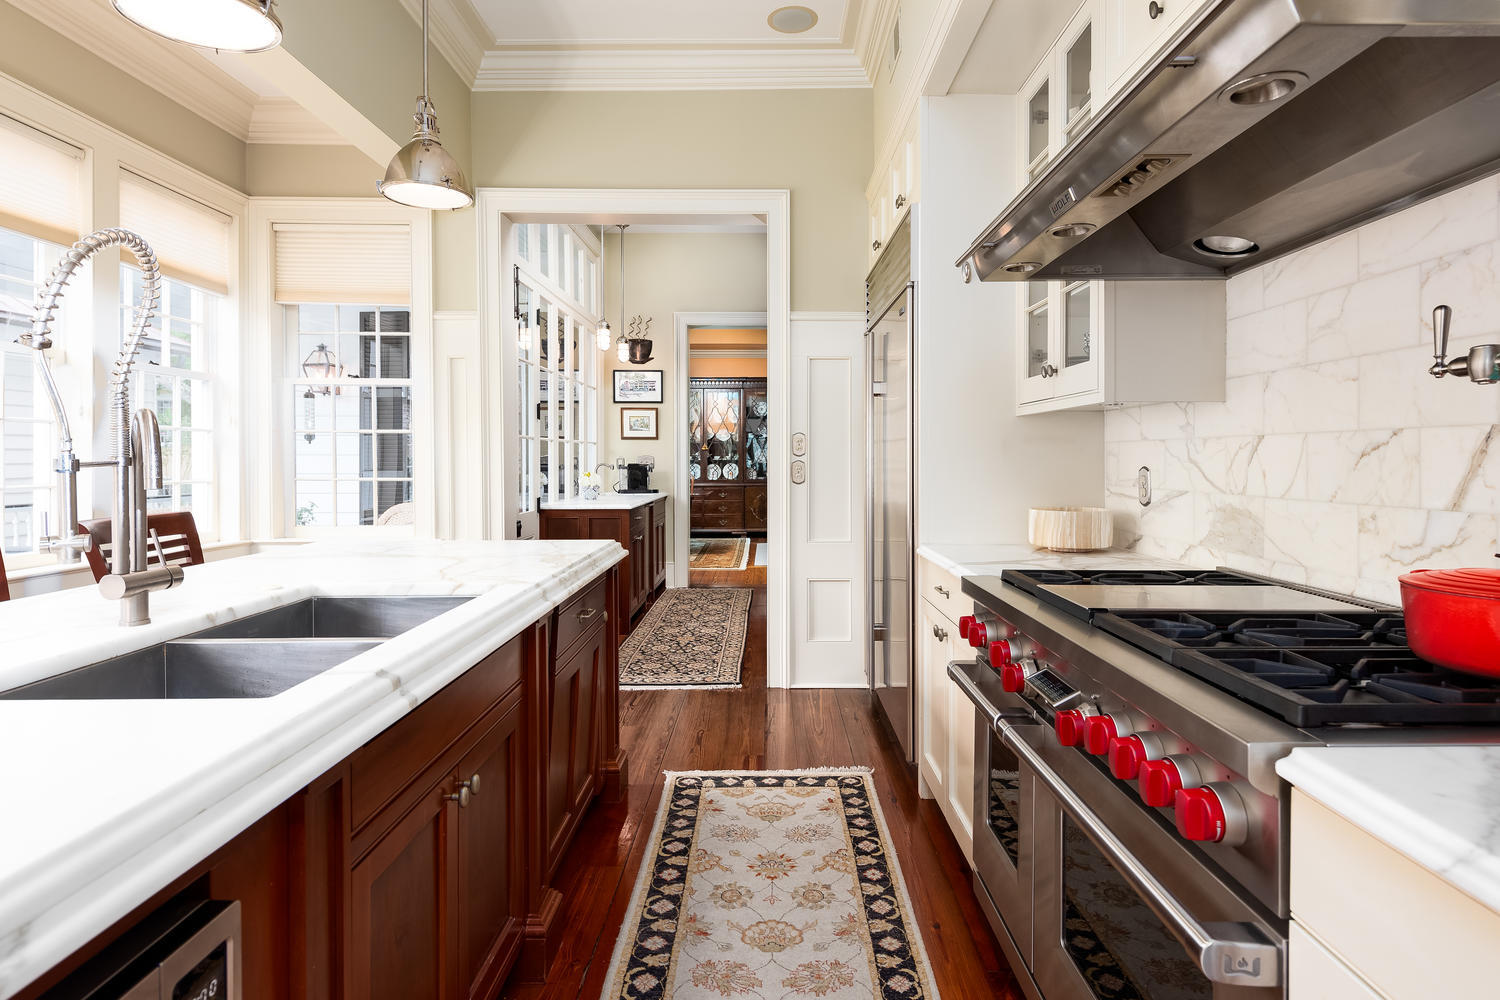 South of Broad Homes For Sale - 66 Church, Charleston, SC - 22